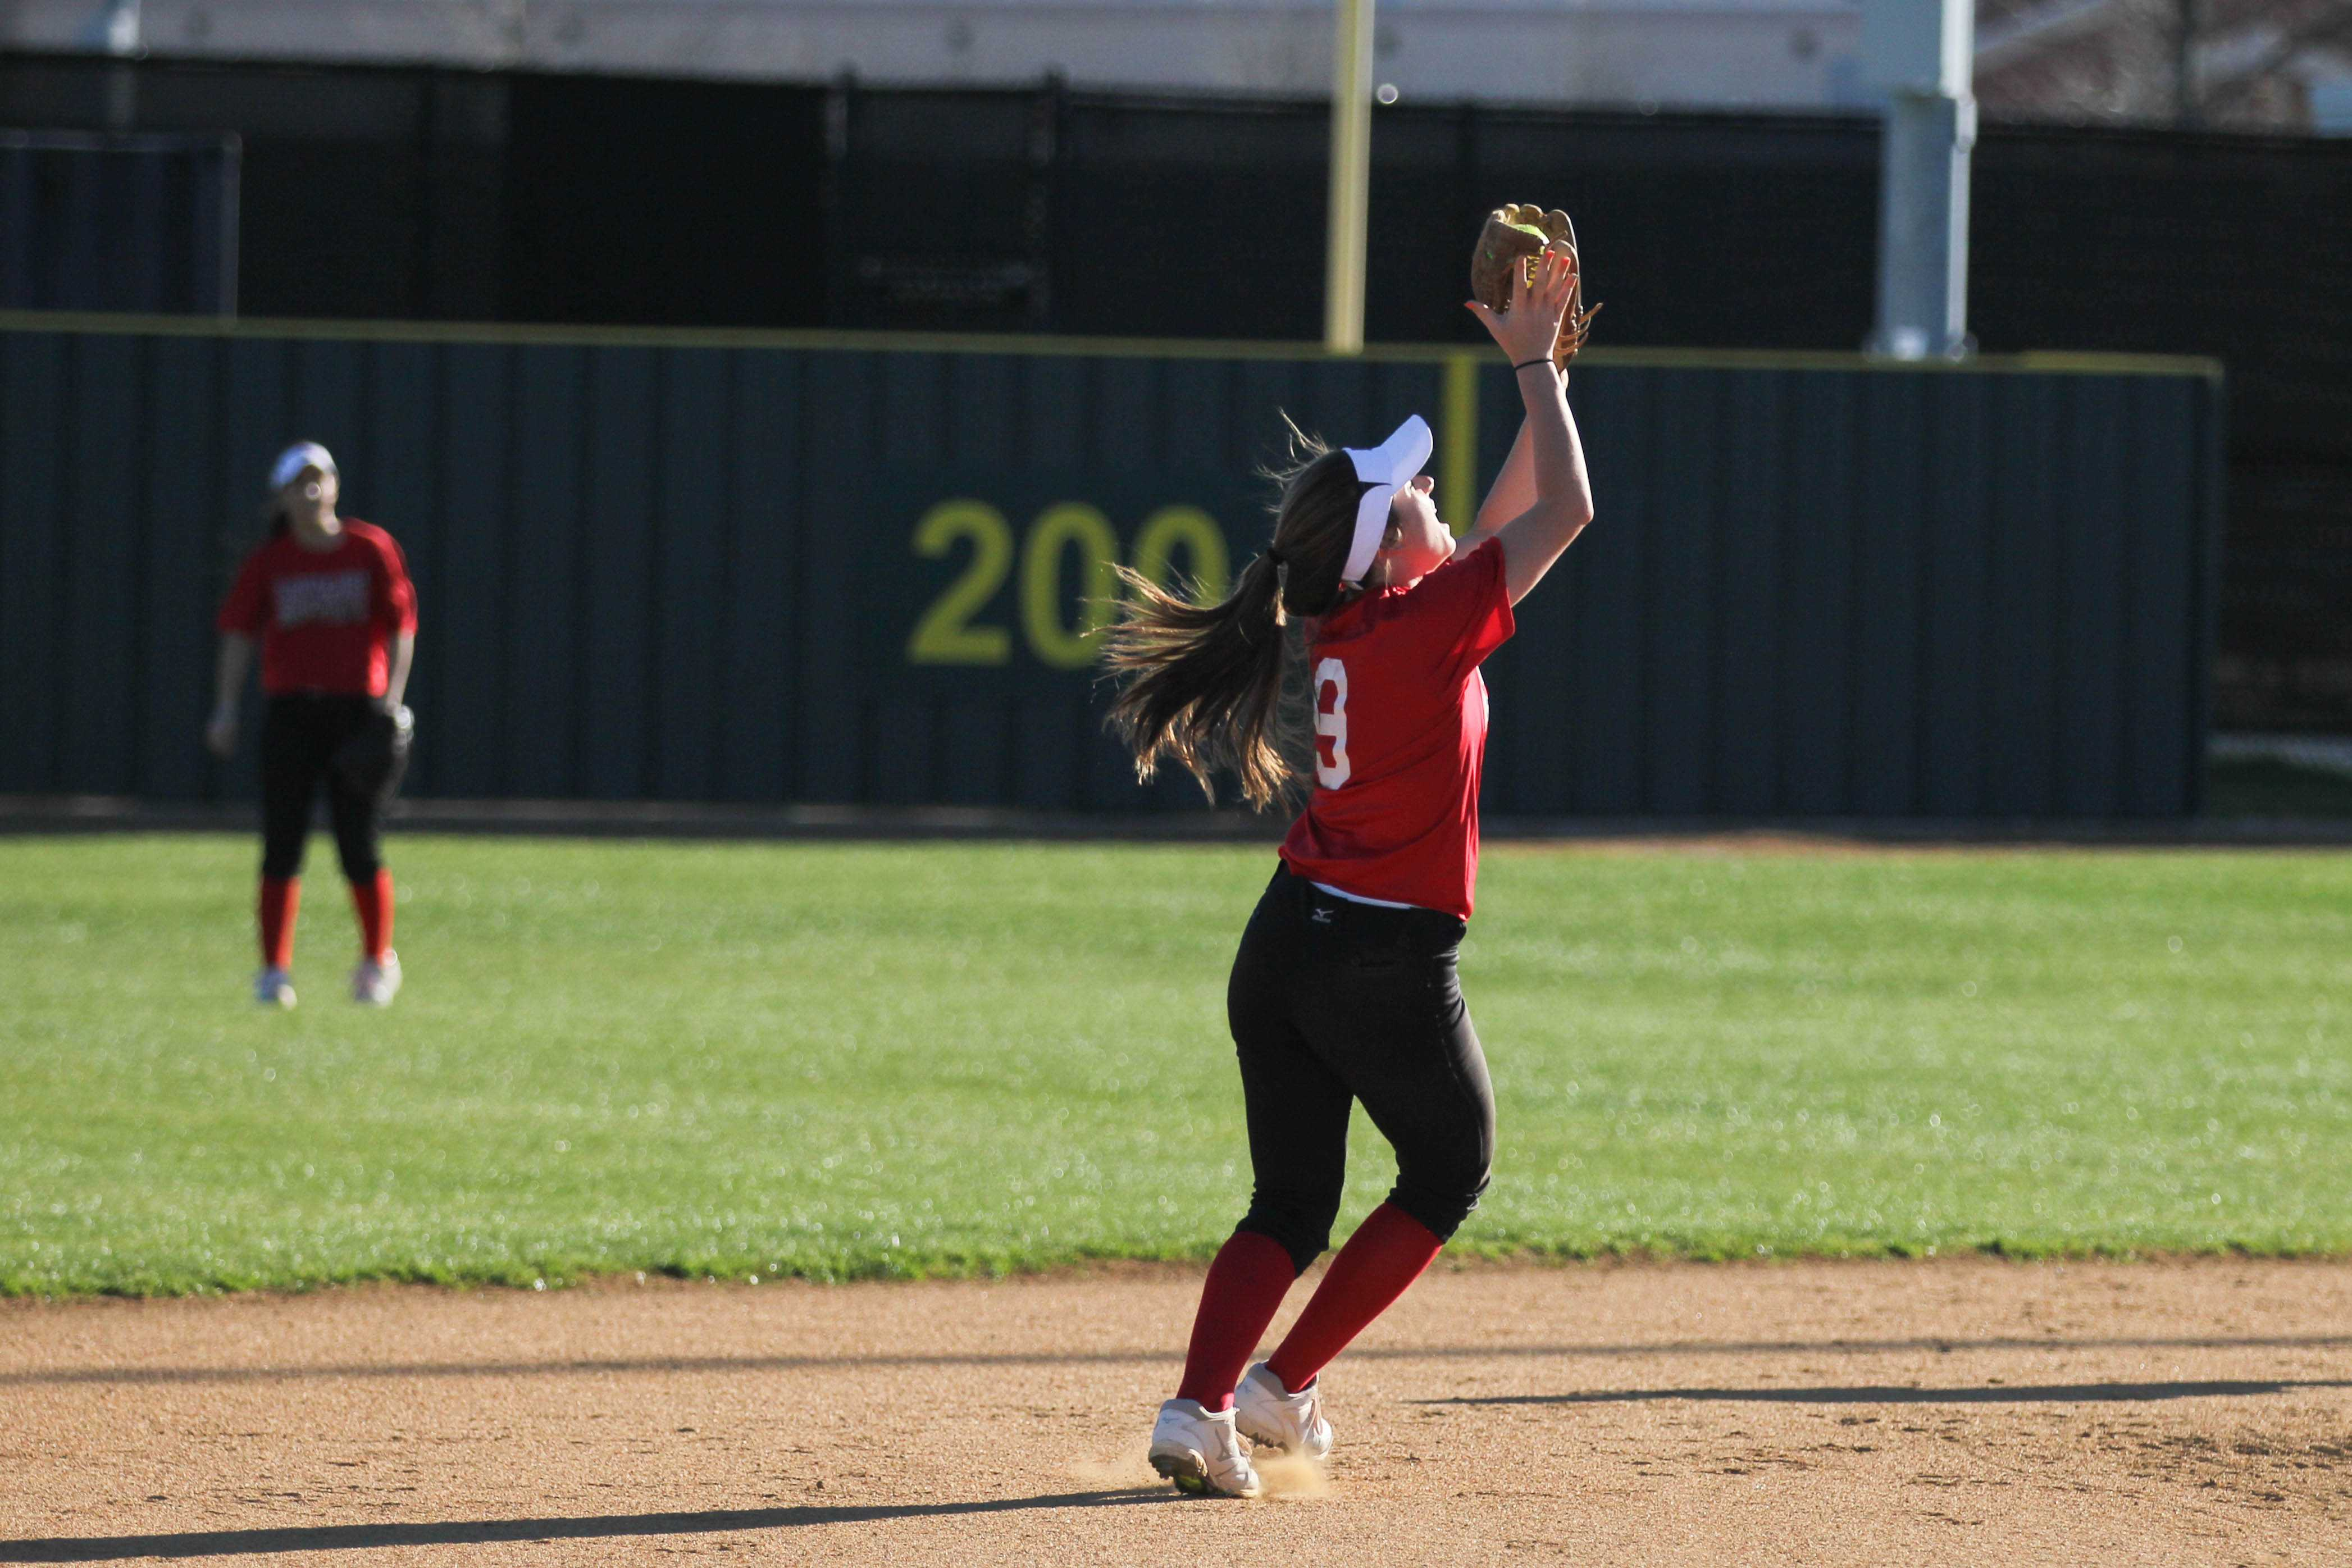 Junior Emily Weichel makes a catch in the infield during practice. Whittle has been playing softball since third grade.